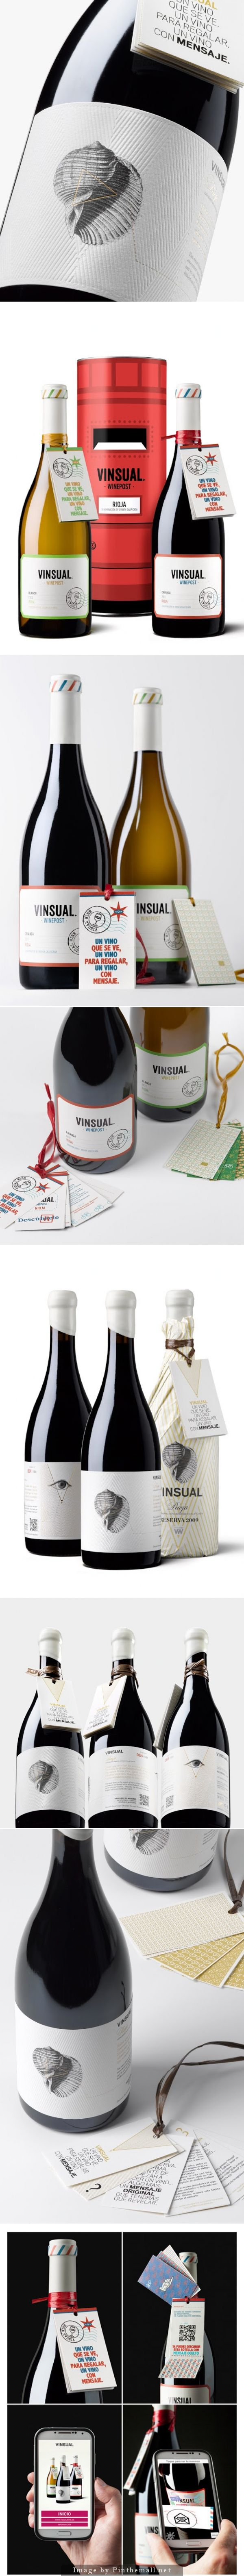 VINSUAL augmented reality #wine #packaging by calcco- http://www.packagingoftheworld.com/2014/10/vinsual.html PD